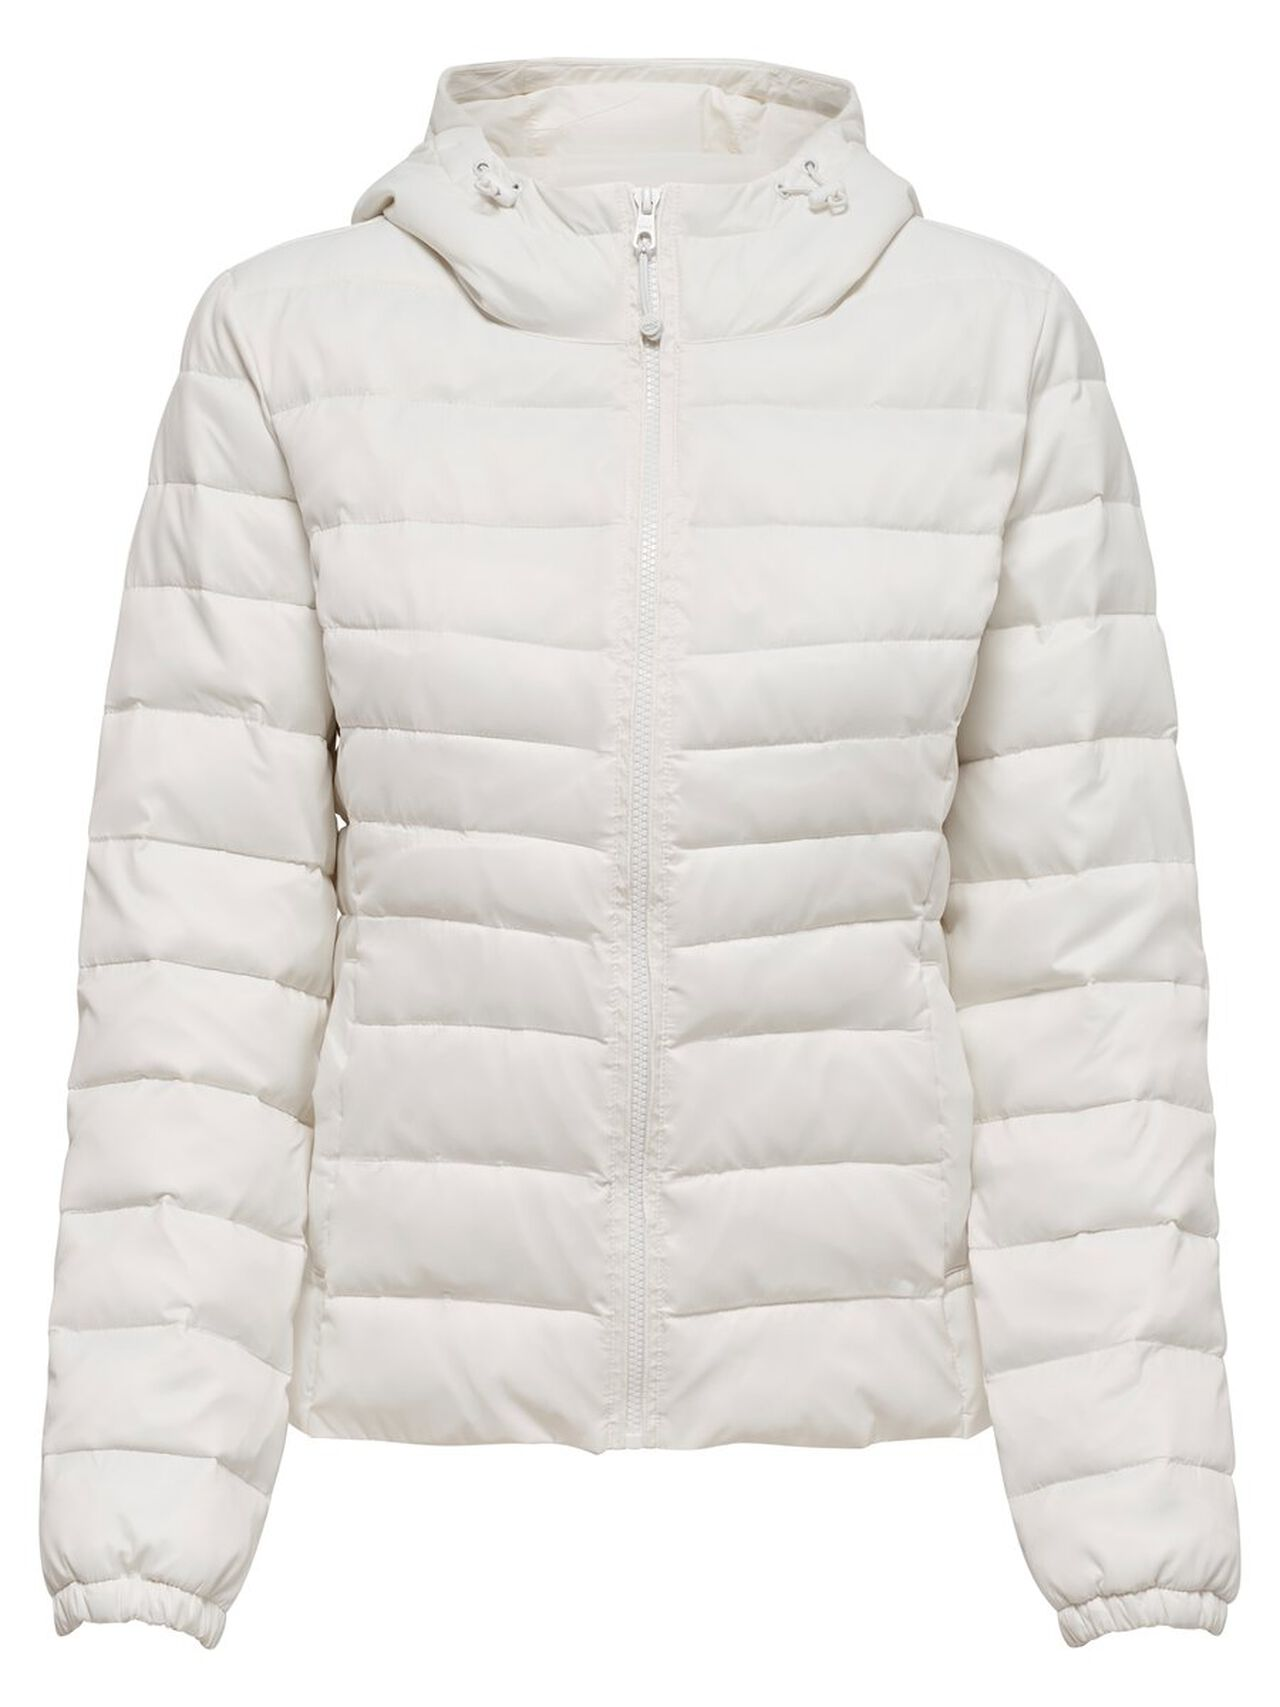 ONLY Short Quilted Jacket Women White